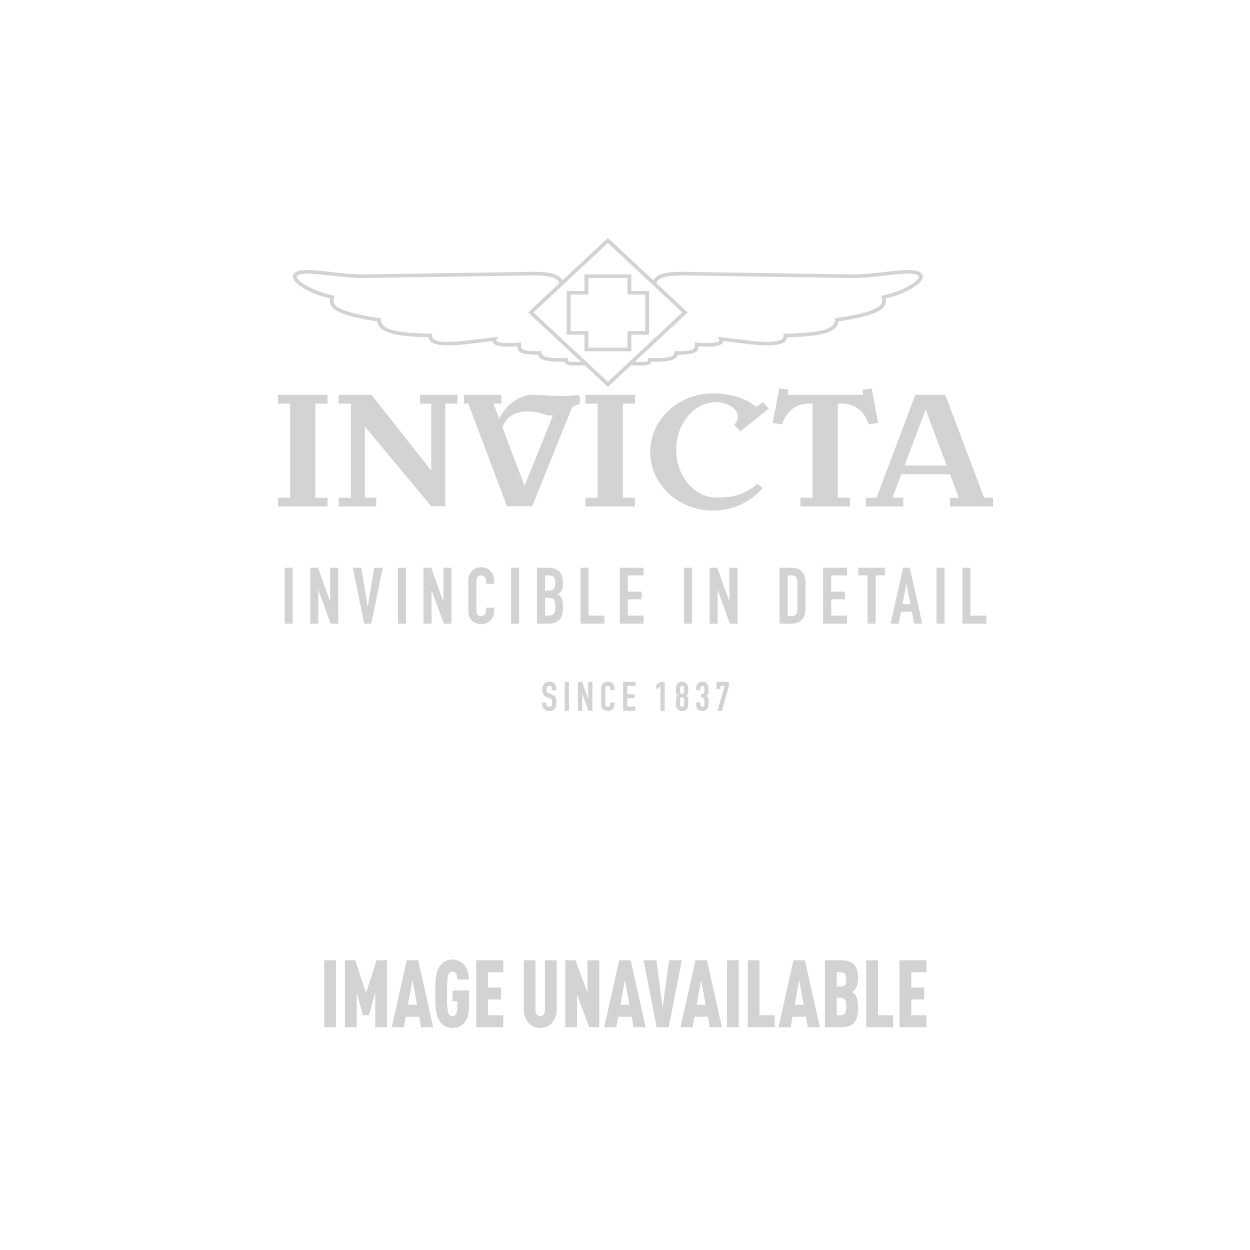 Invicta Angel Swiss Movement Quartz Watch - Stainless Steel case Stainless Steel band - Model 0458